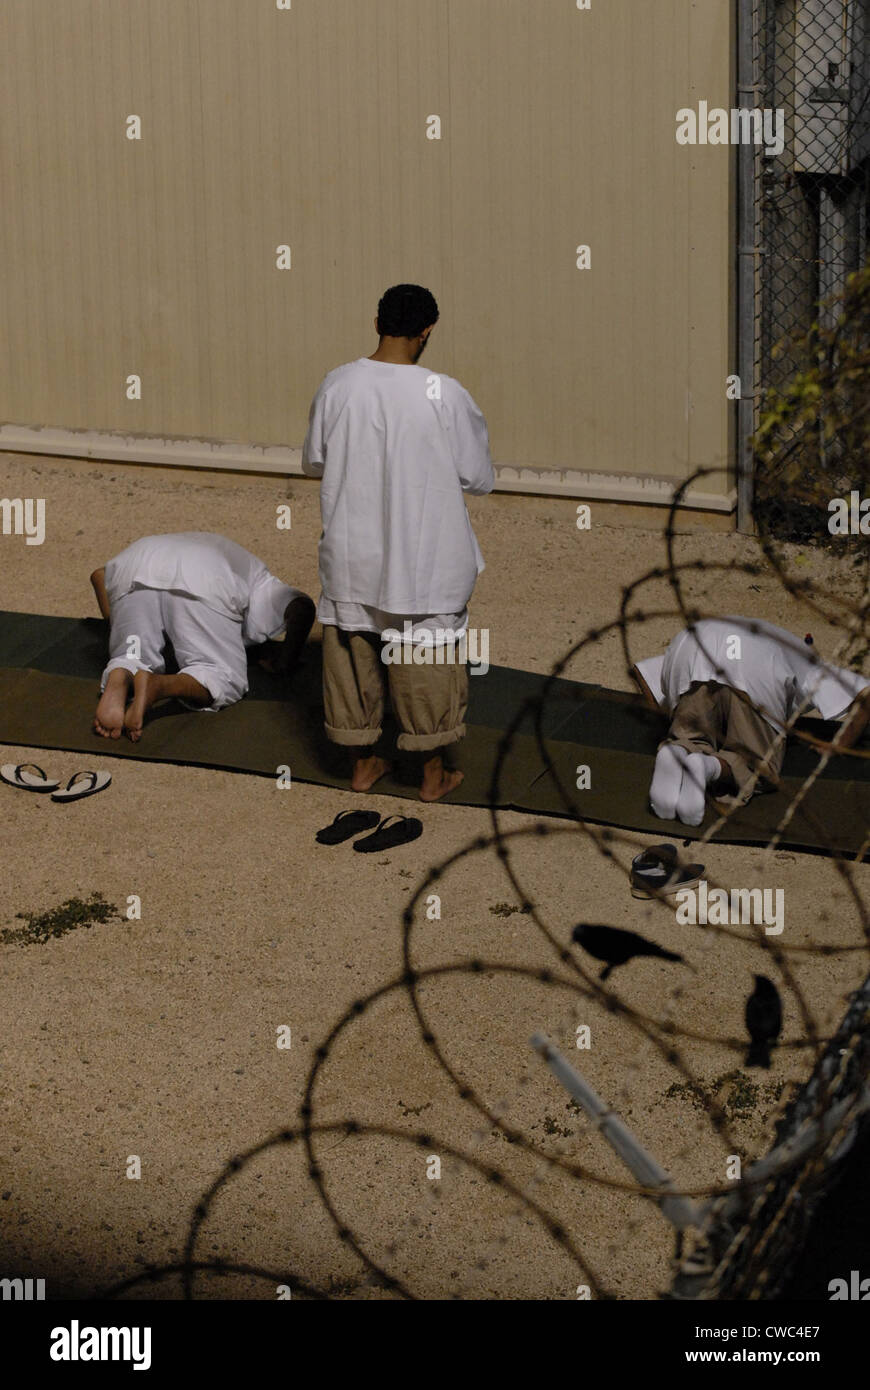 Islamic detainees pray at Camp Delta the military prison at Naval Station Guantanamo Bay Cuba. Oct. 28 2009., Photo - Stock Image